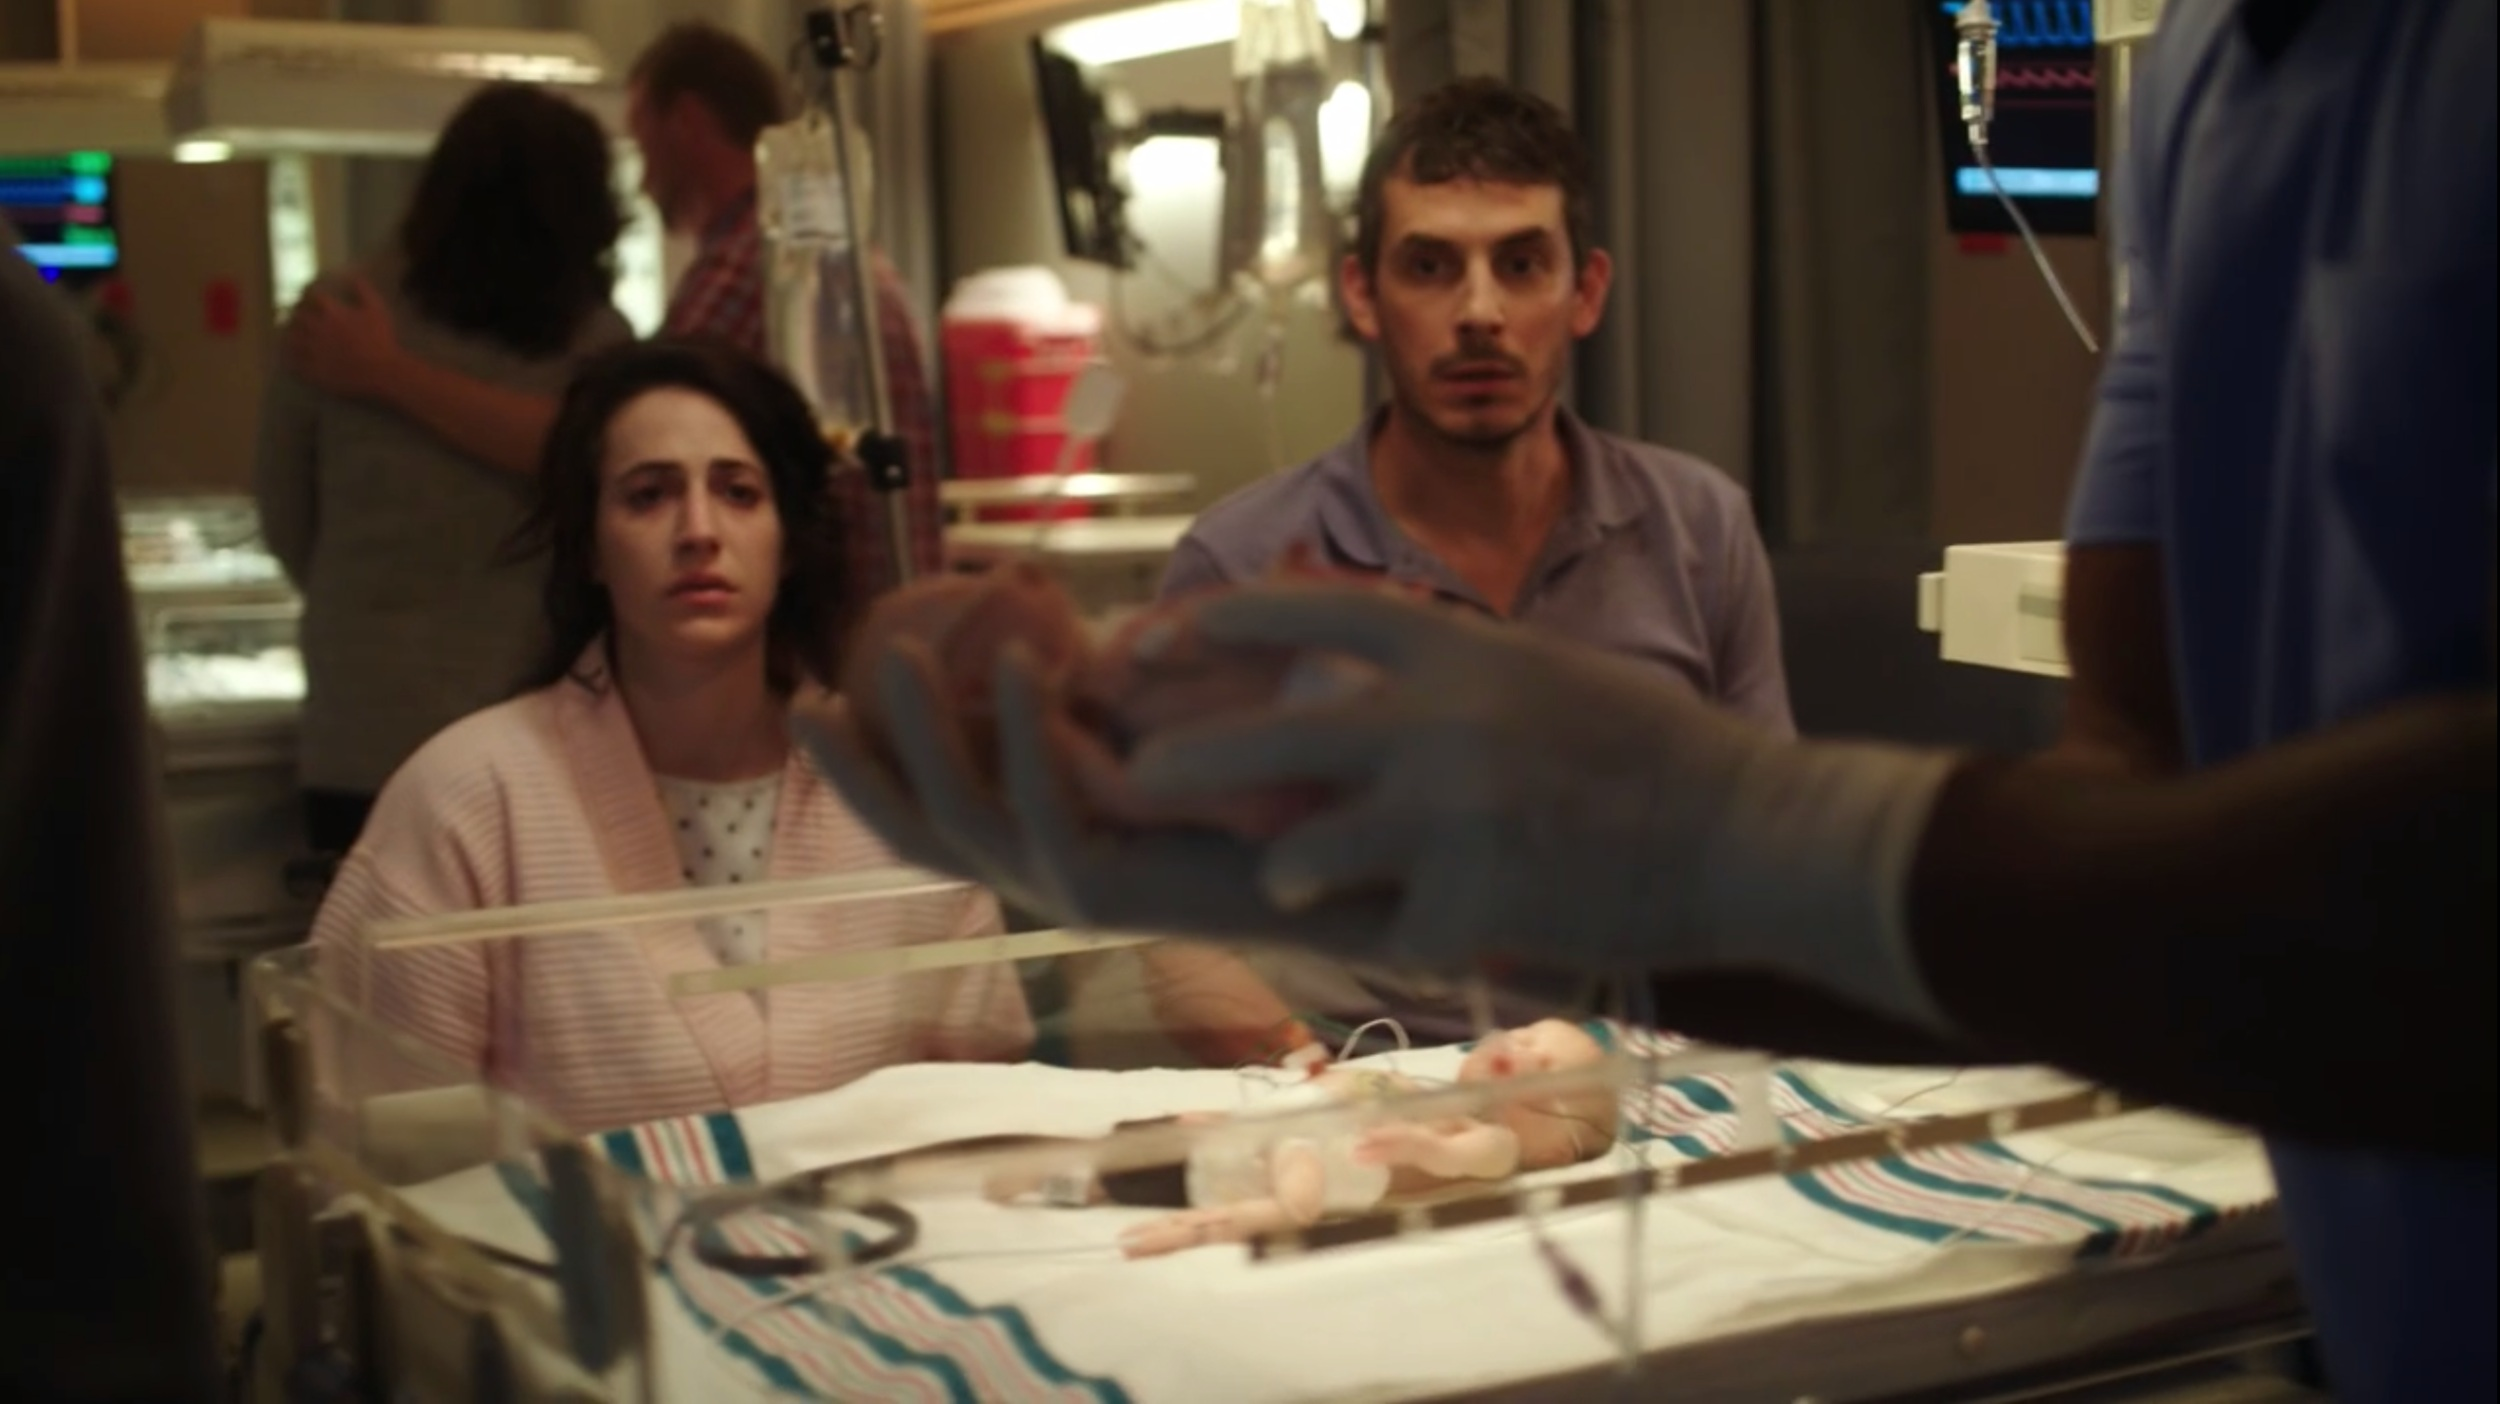 Adrienne_Whitney_Papp_The_ Resident_AdrienneWhitneyPapp_TheResident_S2E1_13.png